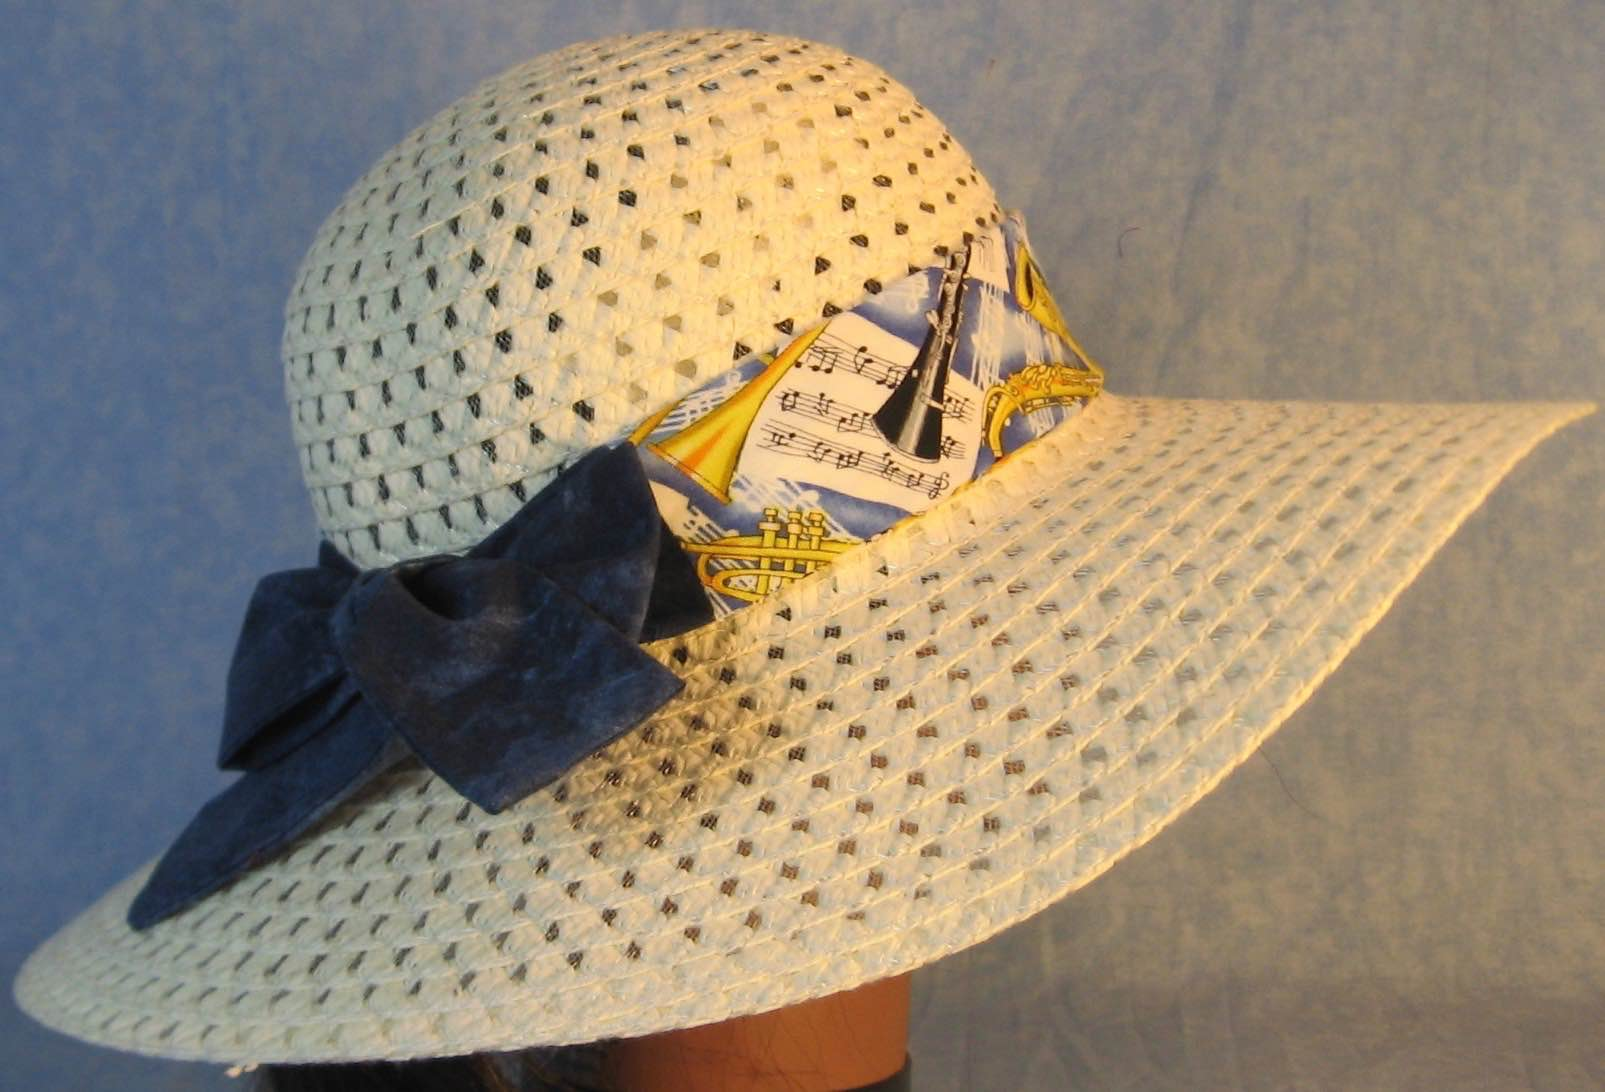 Floppy Hat Band-Music Horns Violin Yellow on Blue with Blue Ties